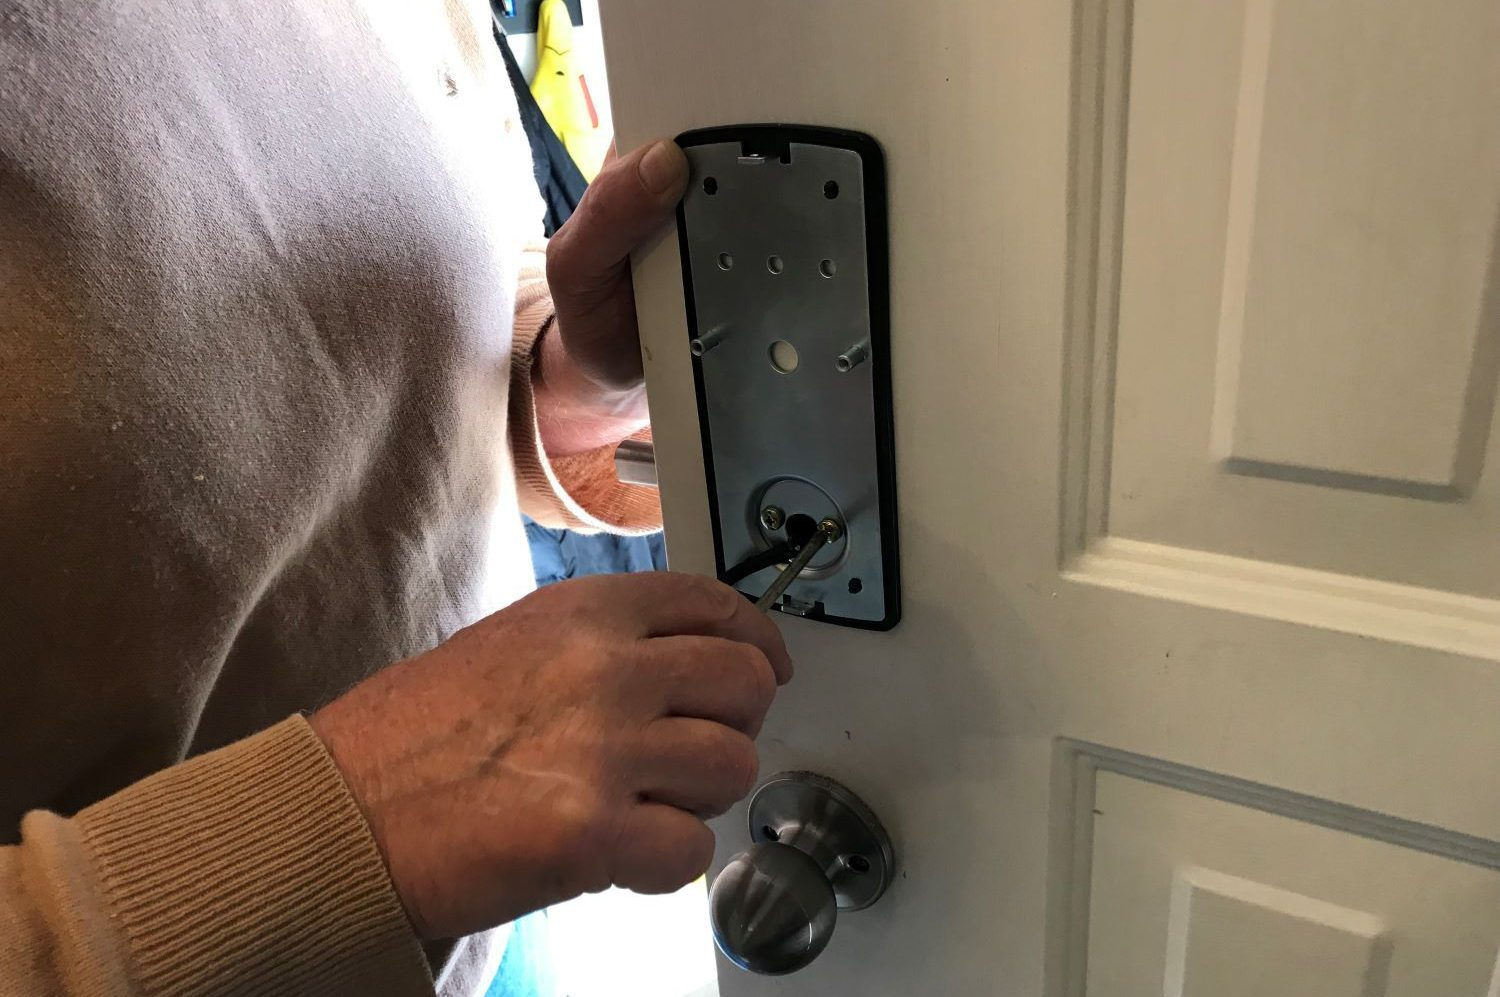 installing the Lockly secure pro smart locks